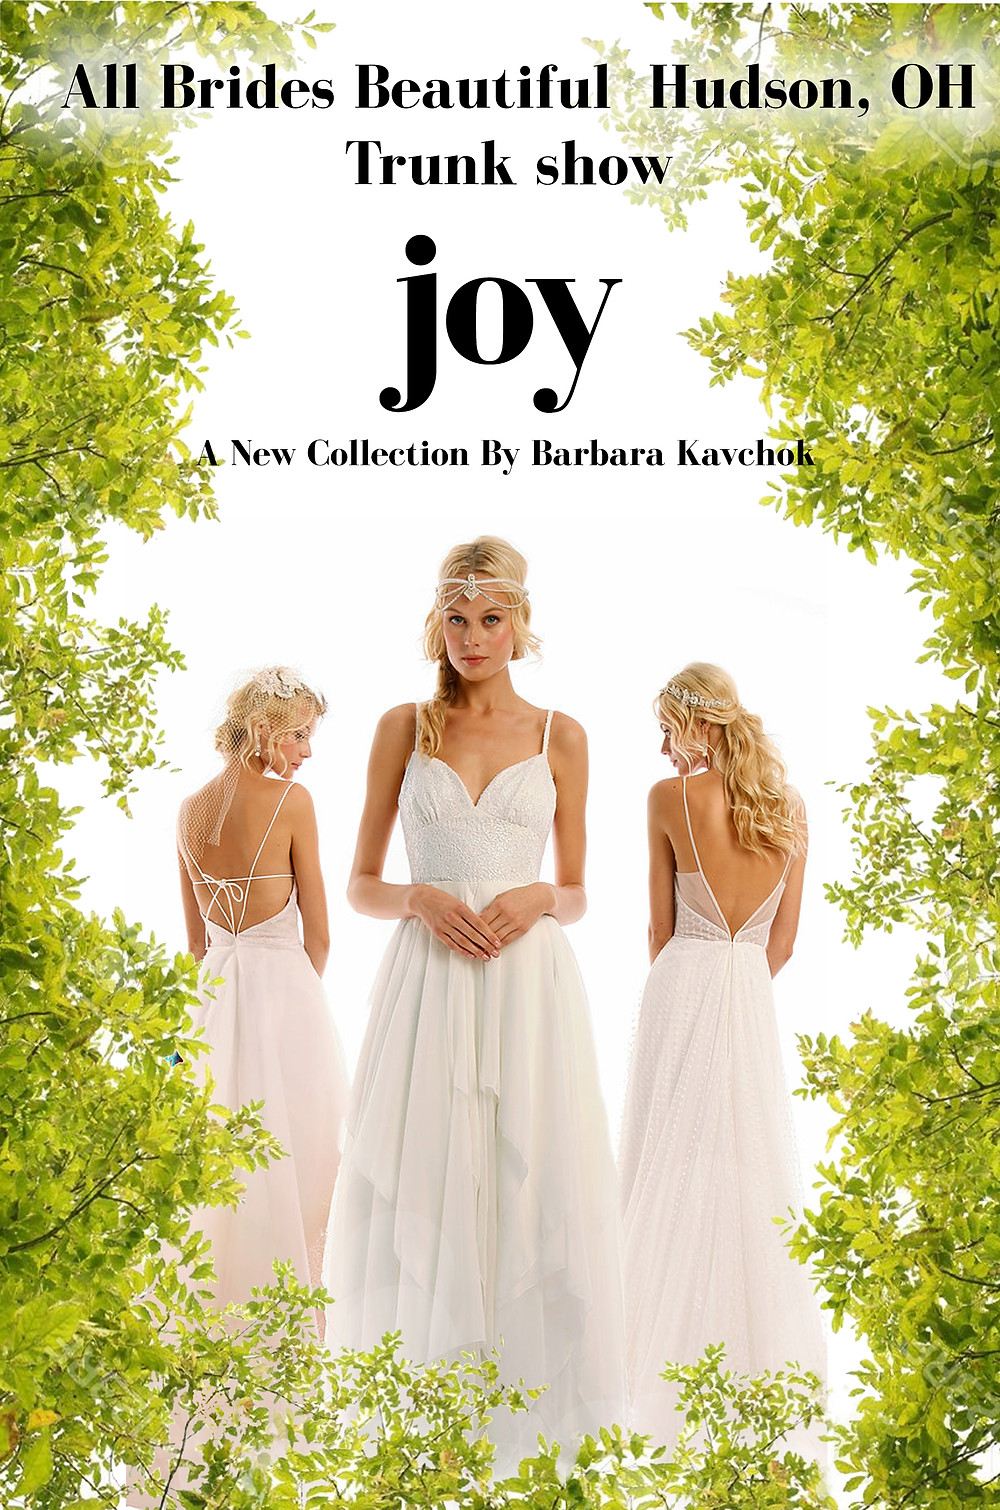 Joy Trunk show in Hudson, OH